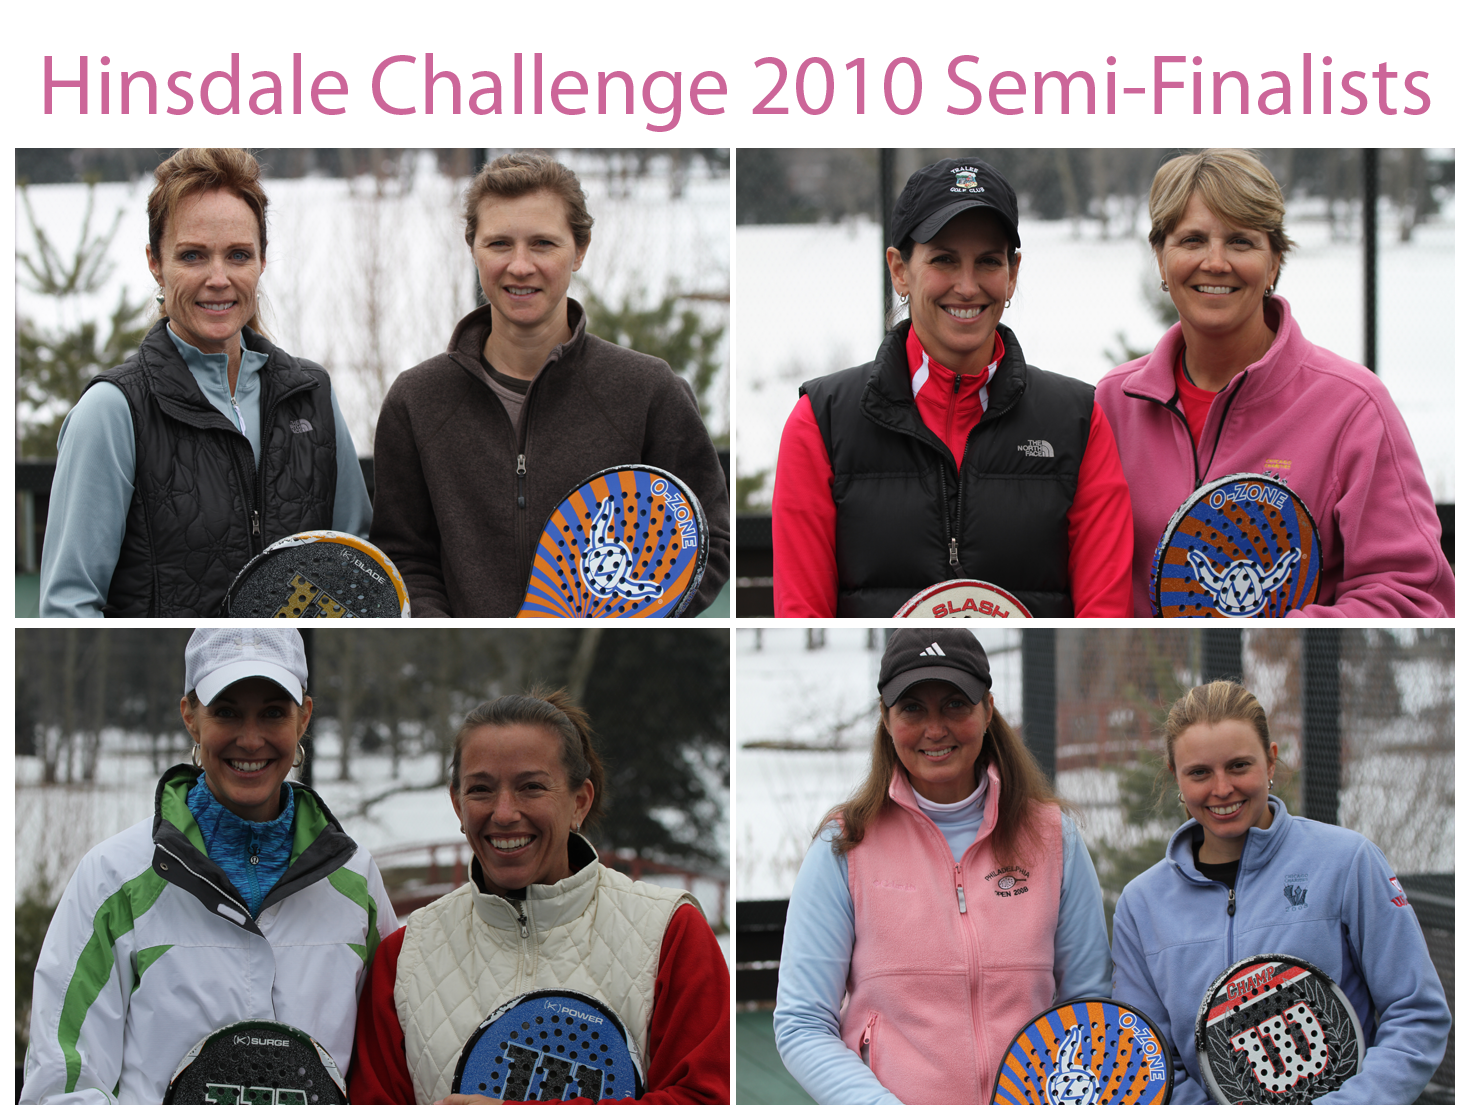 Hinsdale Challenge 2010 Semi-Finalists